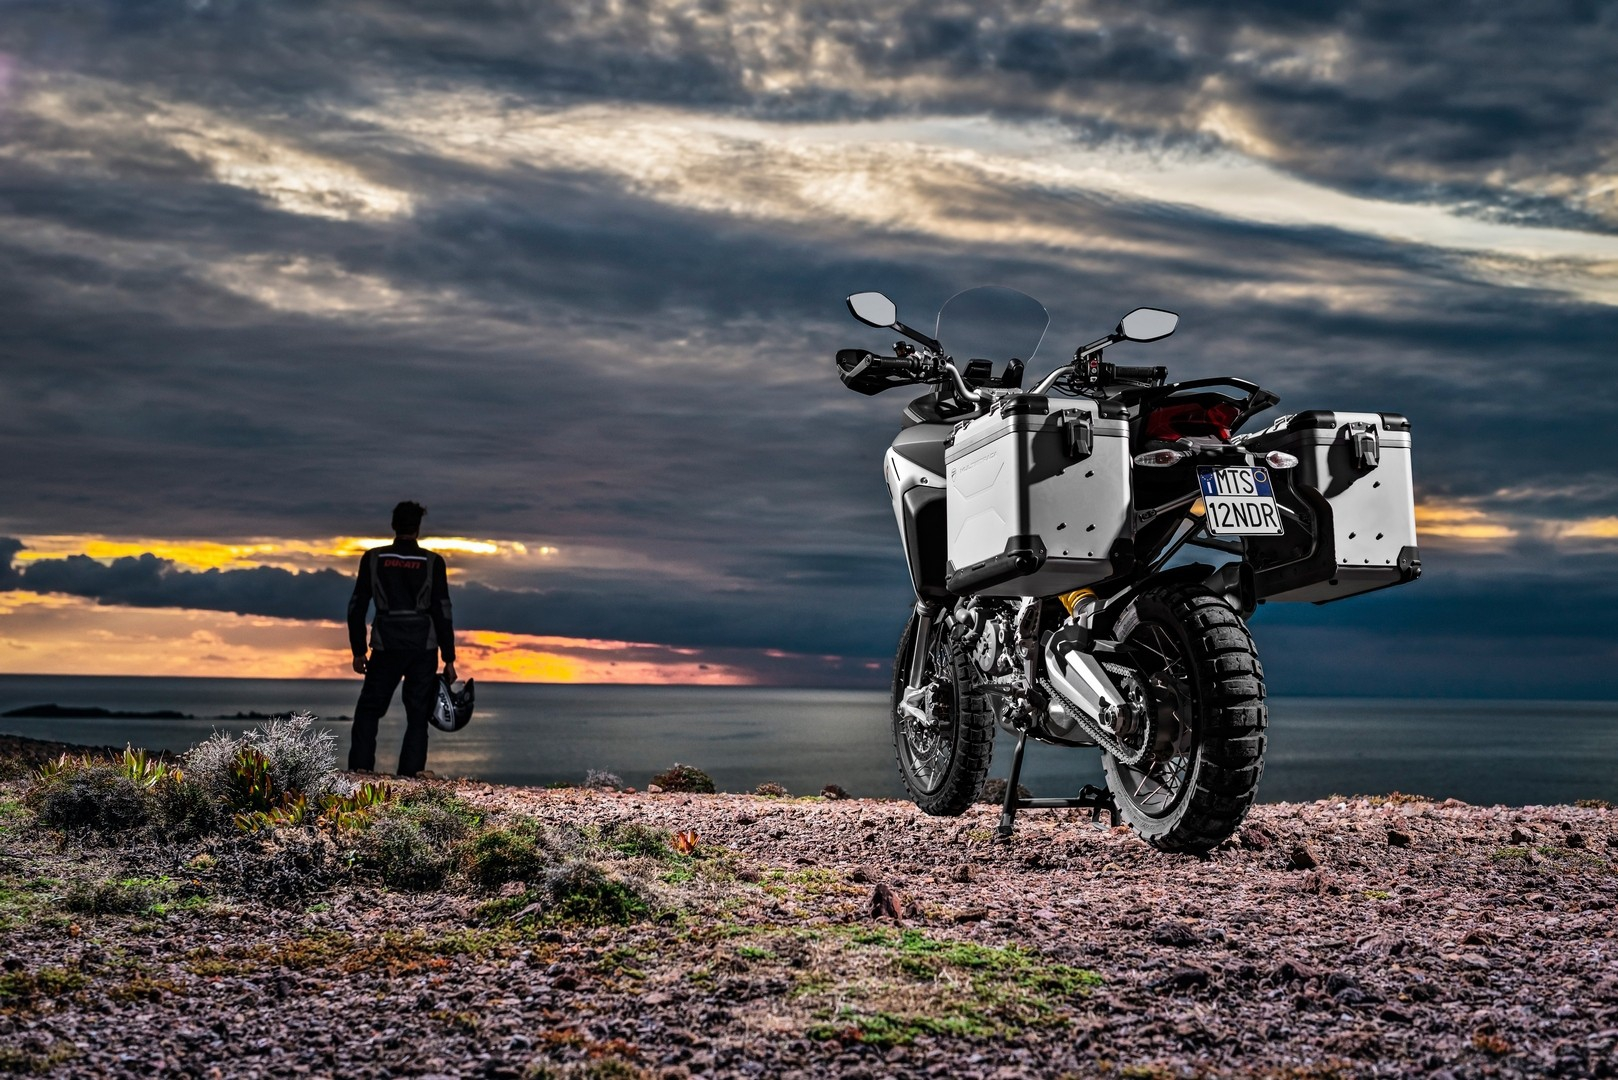 ducati-celebrates-their-90th-anniversary-with-a-round-the-world-motorcycle-trip_3.jpg